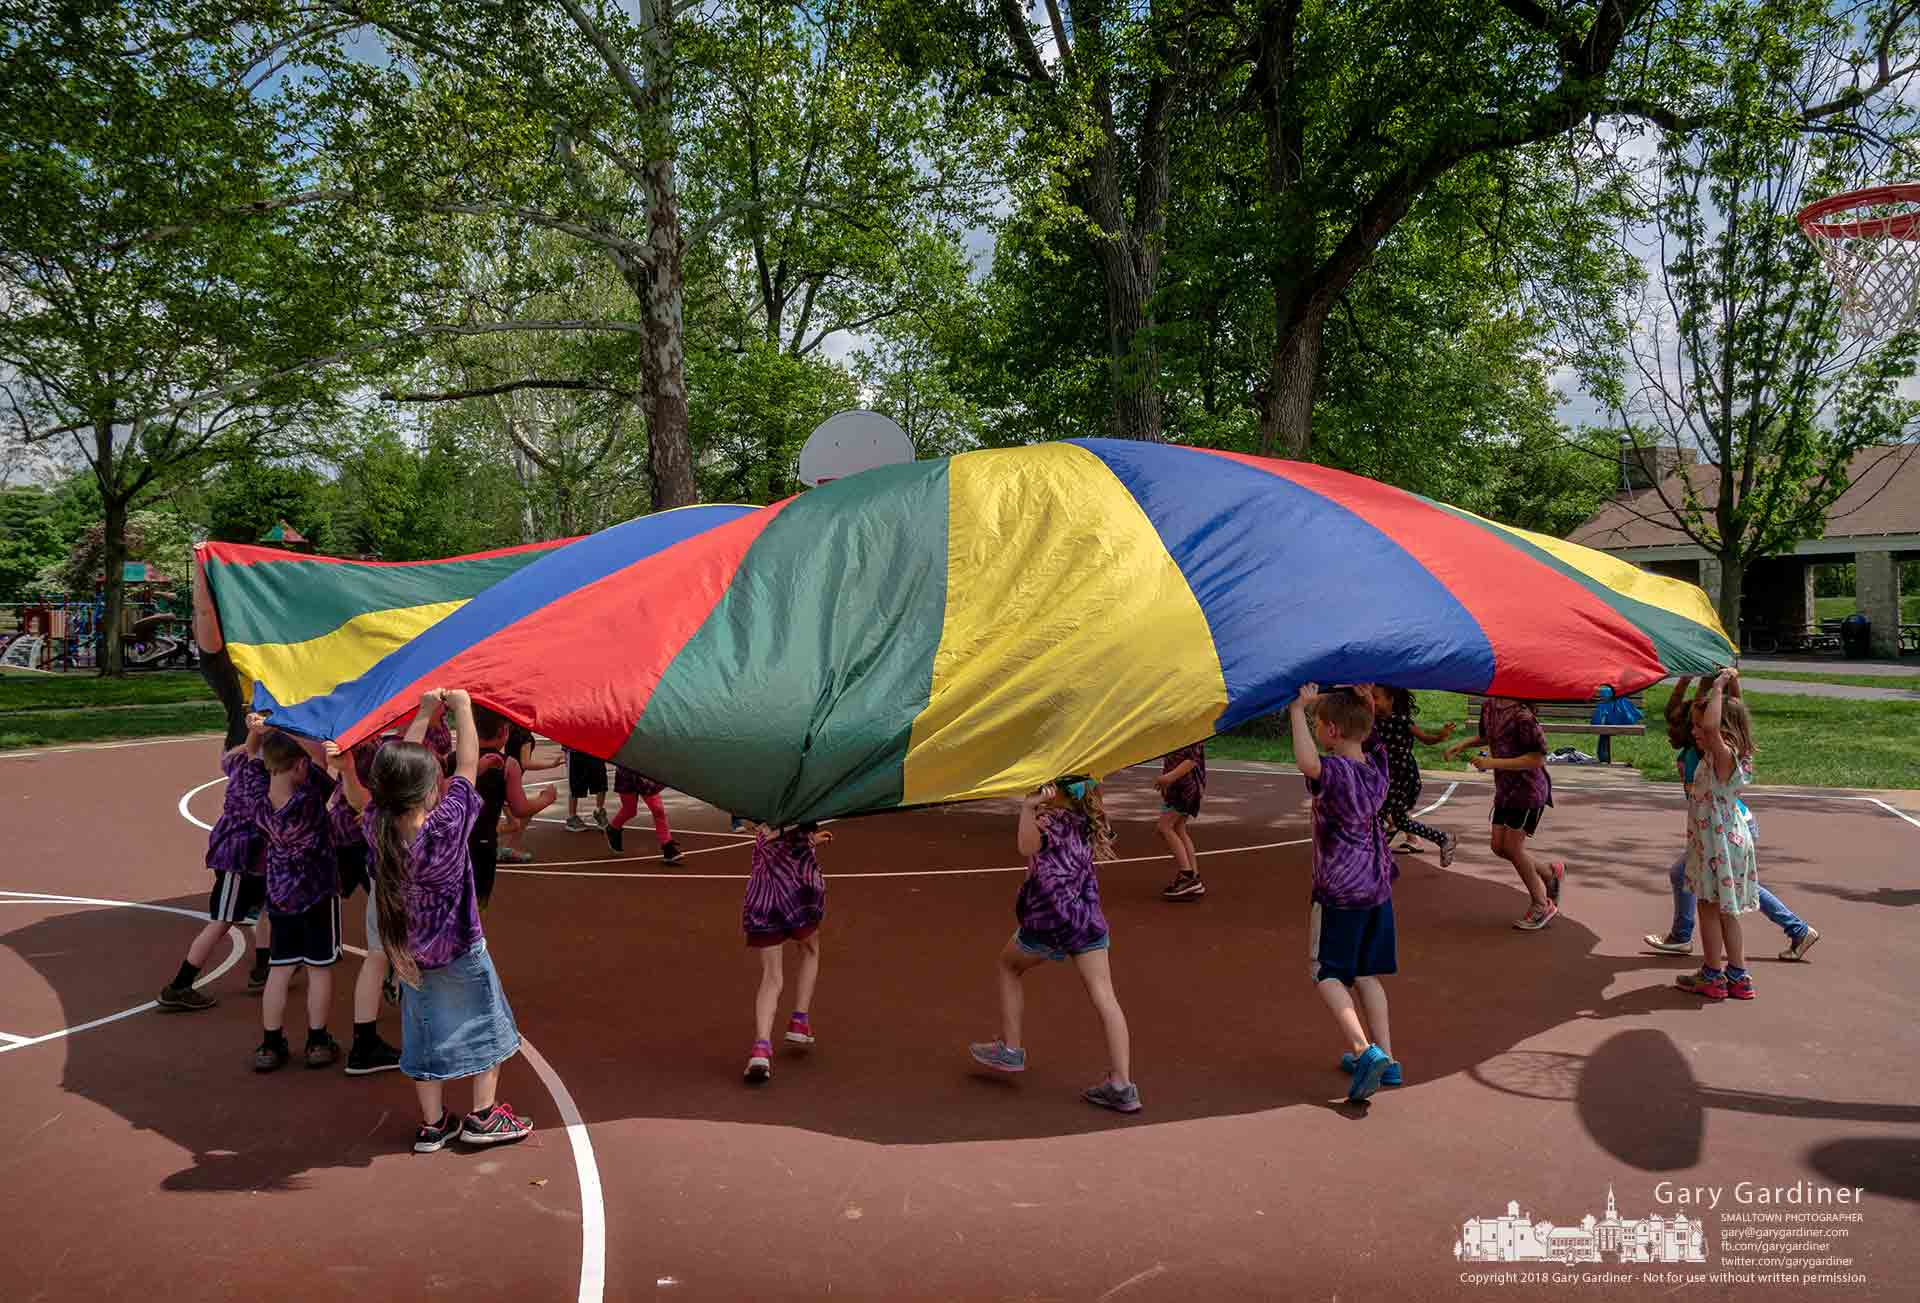 Hanby Elementary first graders run under an inflated parachute duringtheir field trip to Alum Creek Park. My Final Photo for May 17, 2018.